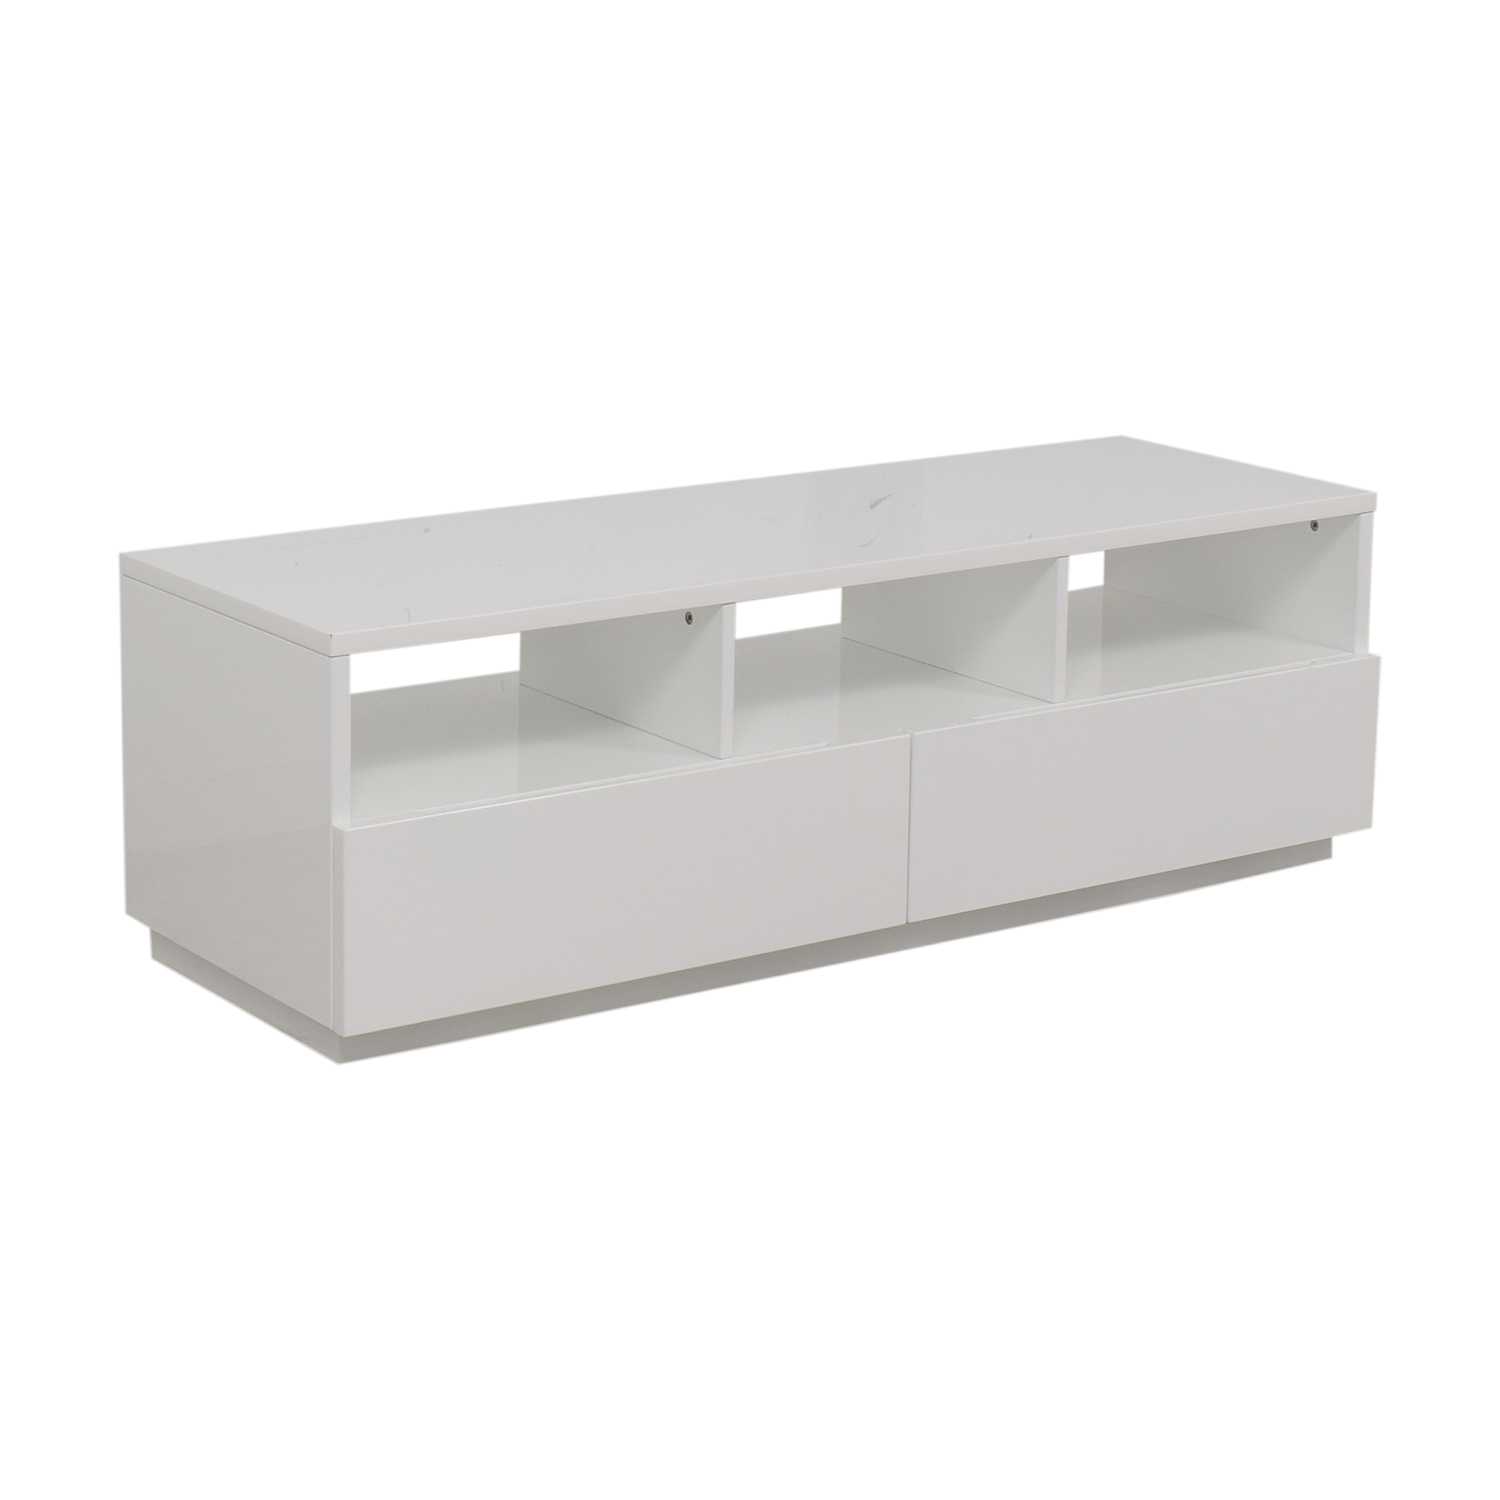 CB2 CB2 Chill White Two-Drawer Media Console nyc